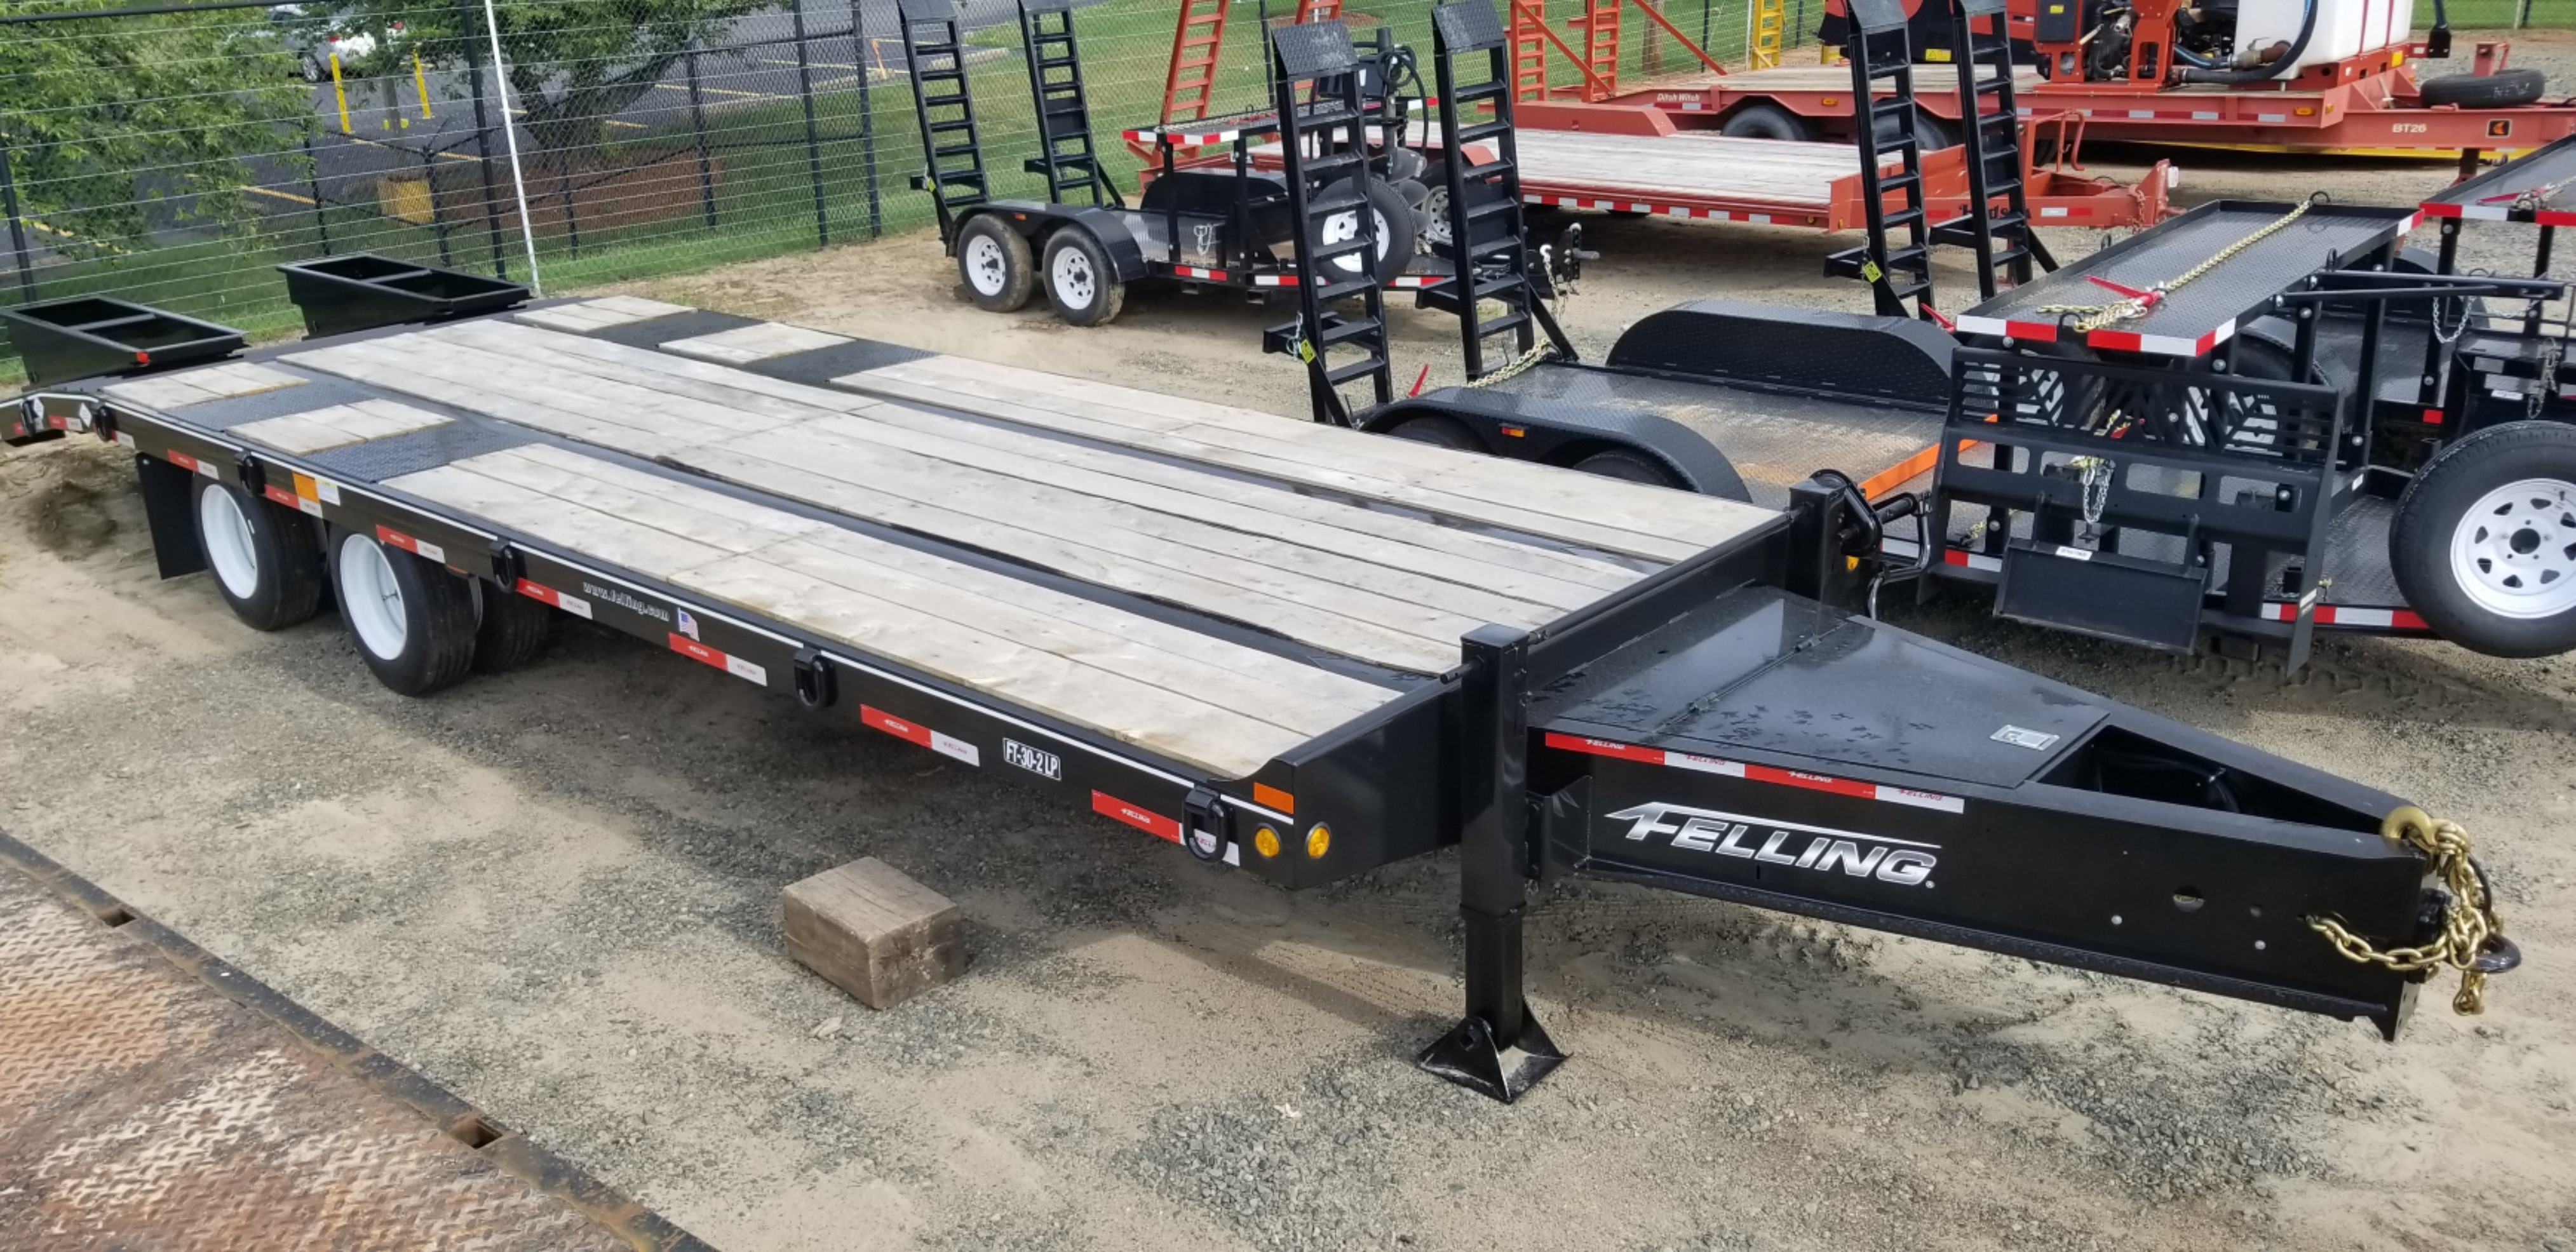 [DIAGRAM_38DE]  New Felling Trailers FT-30-2 LP Deck-Over Tag in Charlotte, NC | Felling Trailer Wiring Harness For A |  | Ditch Witch Equipment of NC & SC